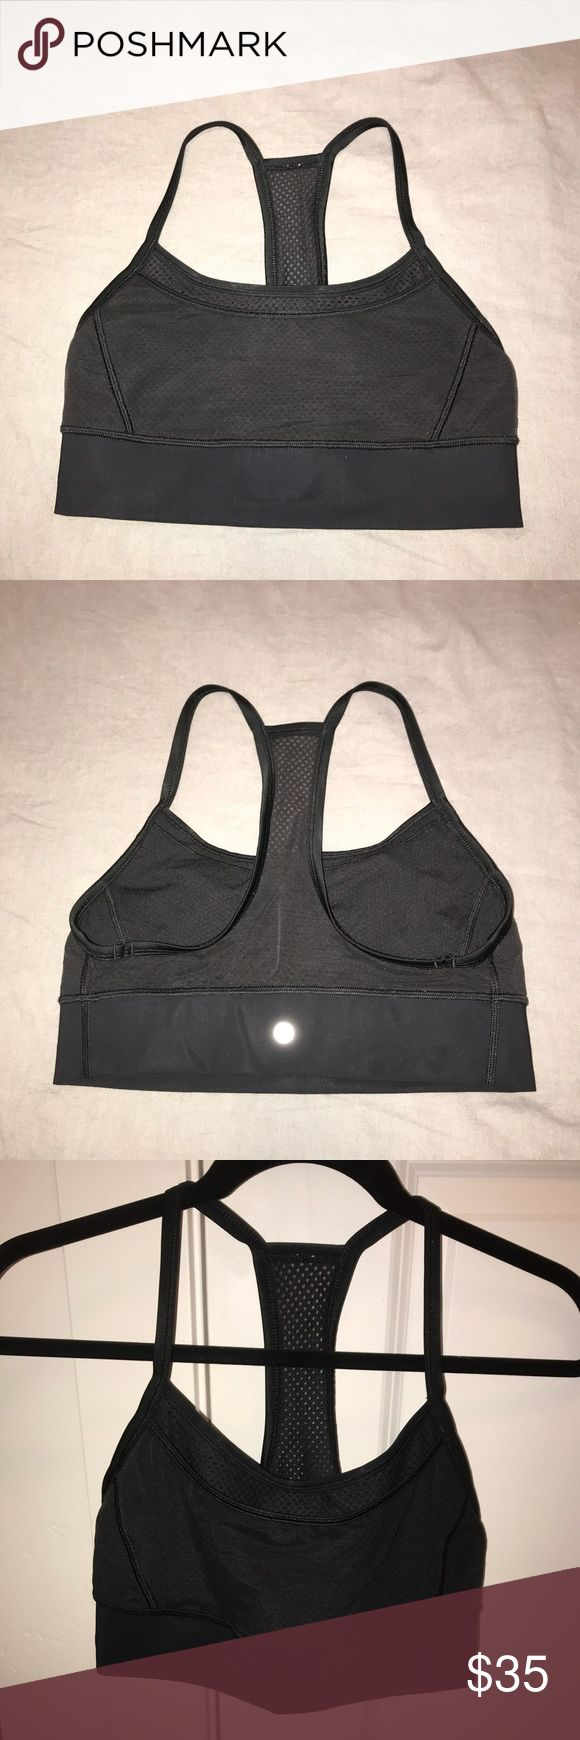 Lululemon Sports Bra Size 8 Dark black size 8! Worn once or twice so there are no flaws except I did remove the tag! Not sure what this style is called, it's no longer for sale online! lululemon athletica Tops